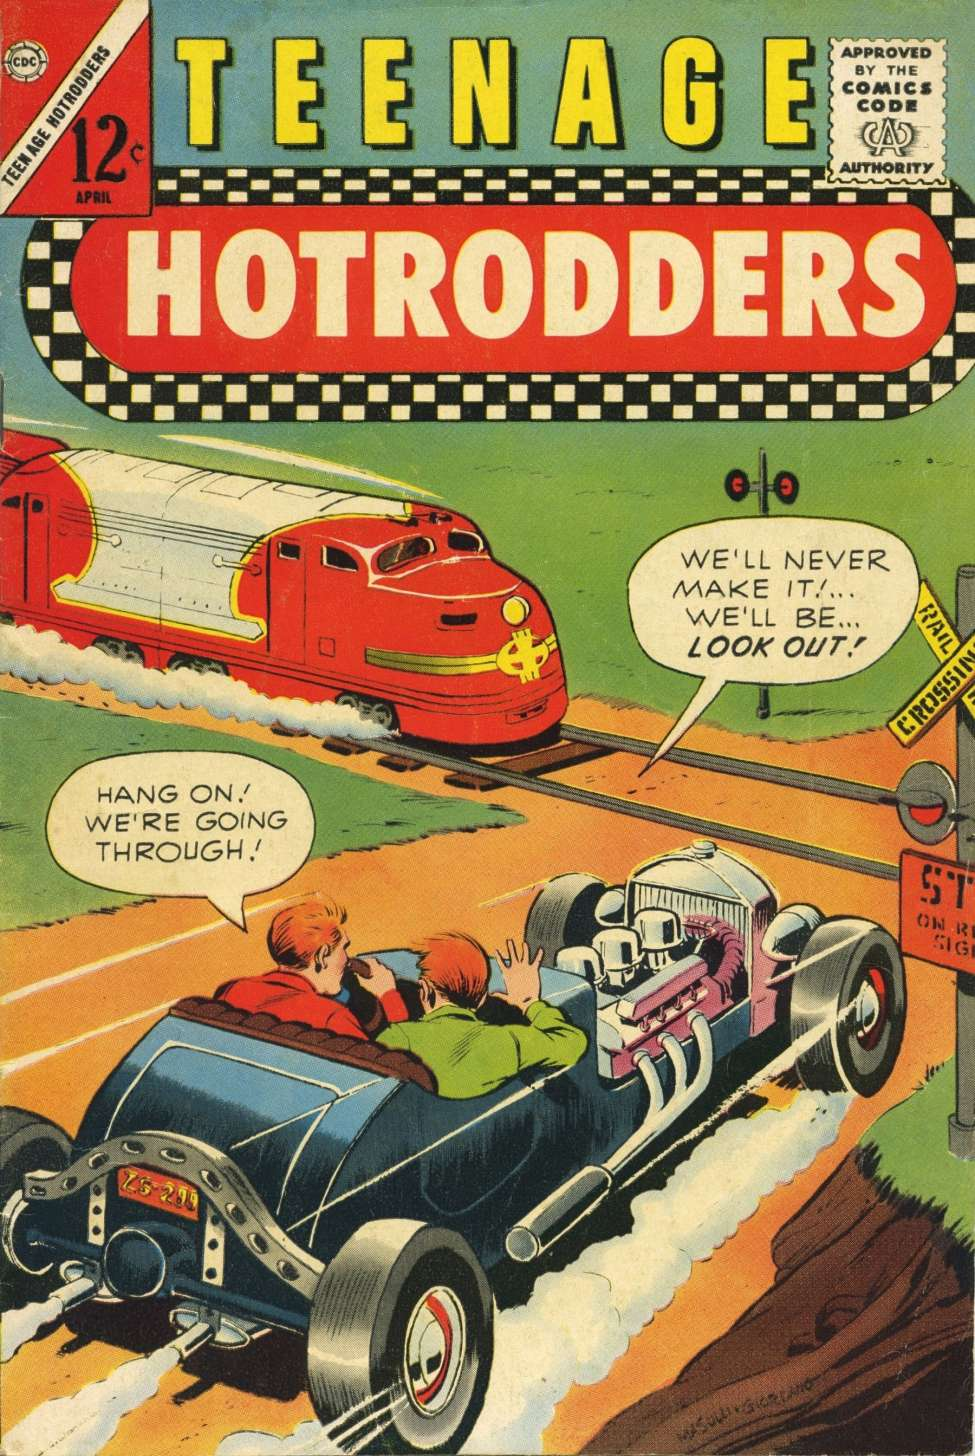 Teenage Hotrodders #1 (Charlton) - Comic Book Plus